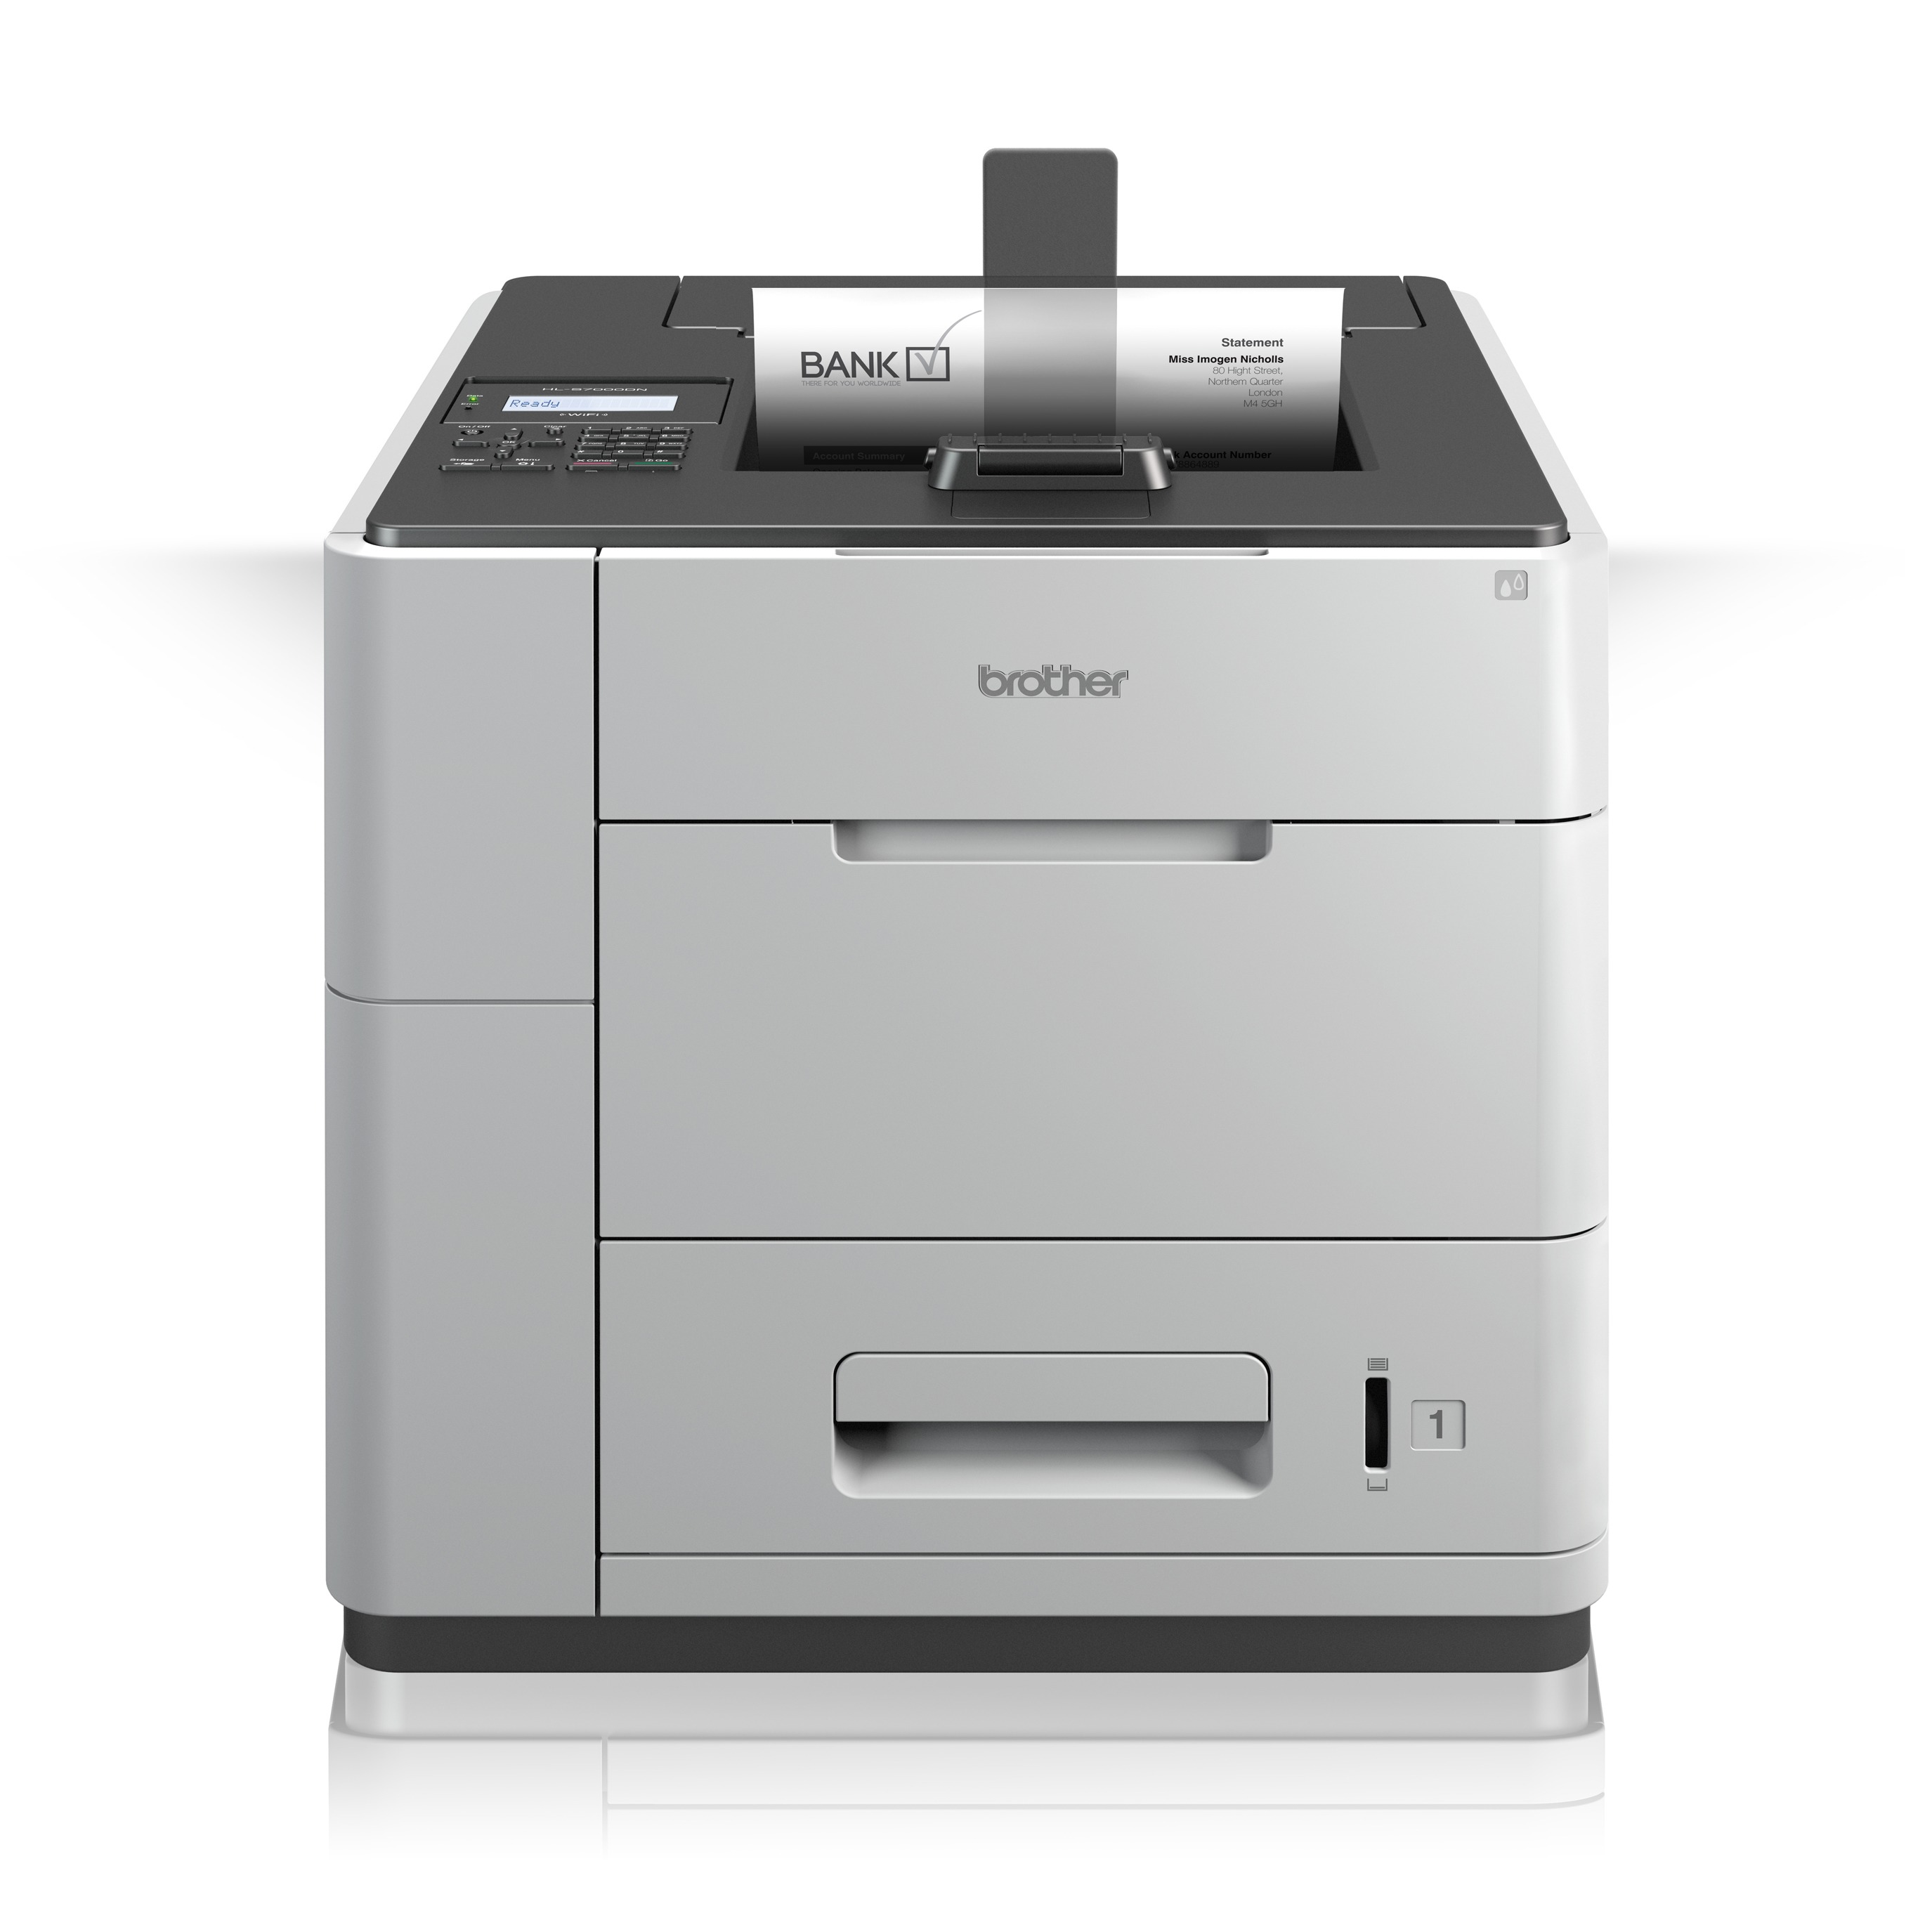 Op Home Media Centre is alles over computer te vinden: waaronder expert en specifiek Brother laser printer HL-S7000DN